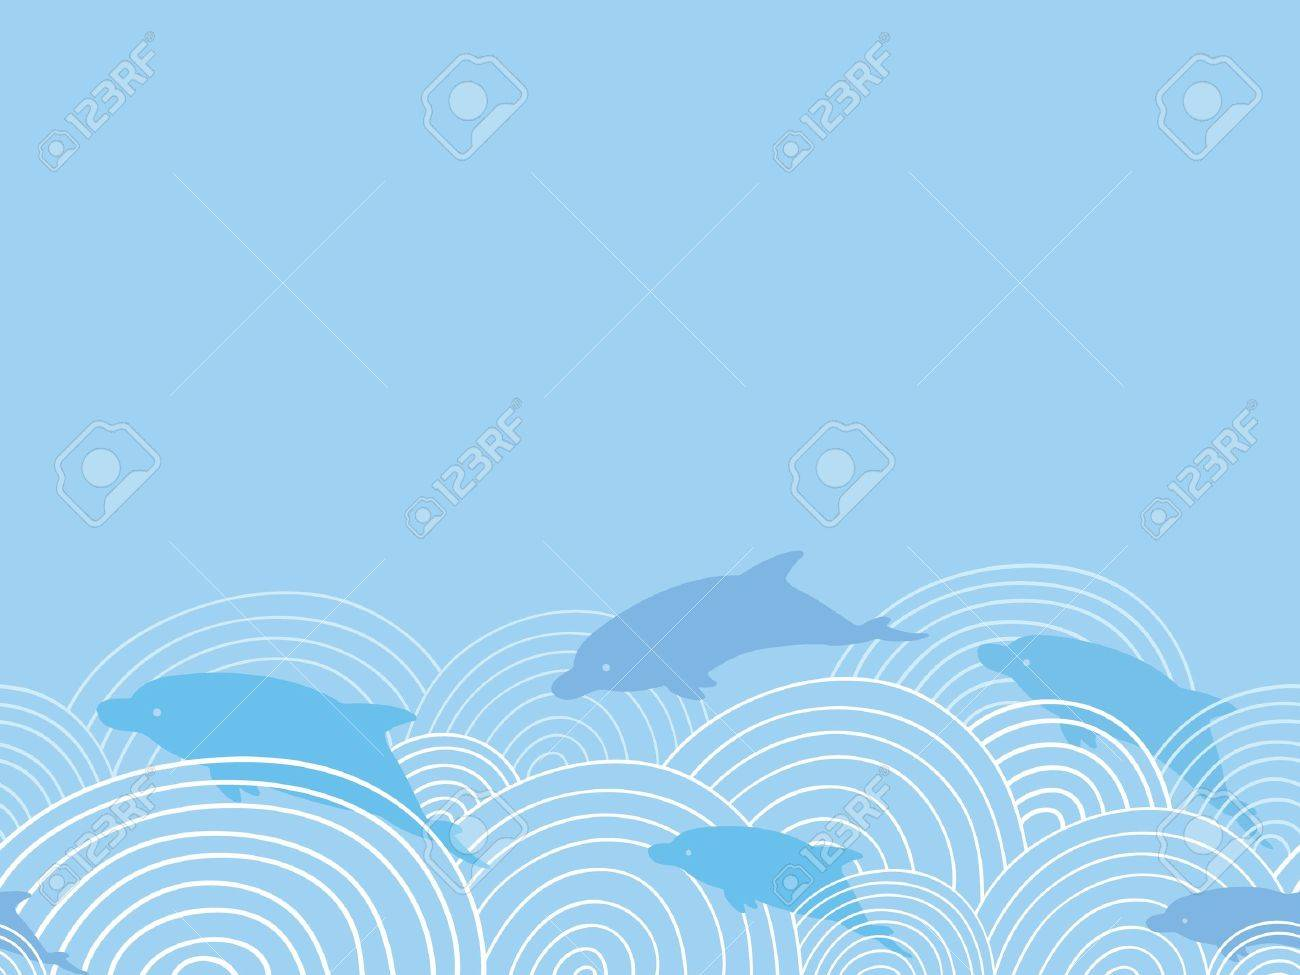 Dolphines among waves horizontal seamless pattern background Stock Vector - 16820426